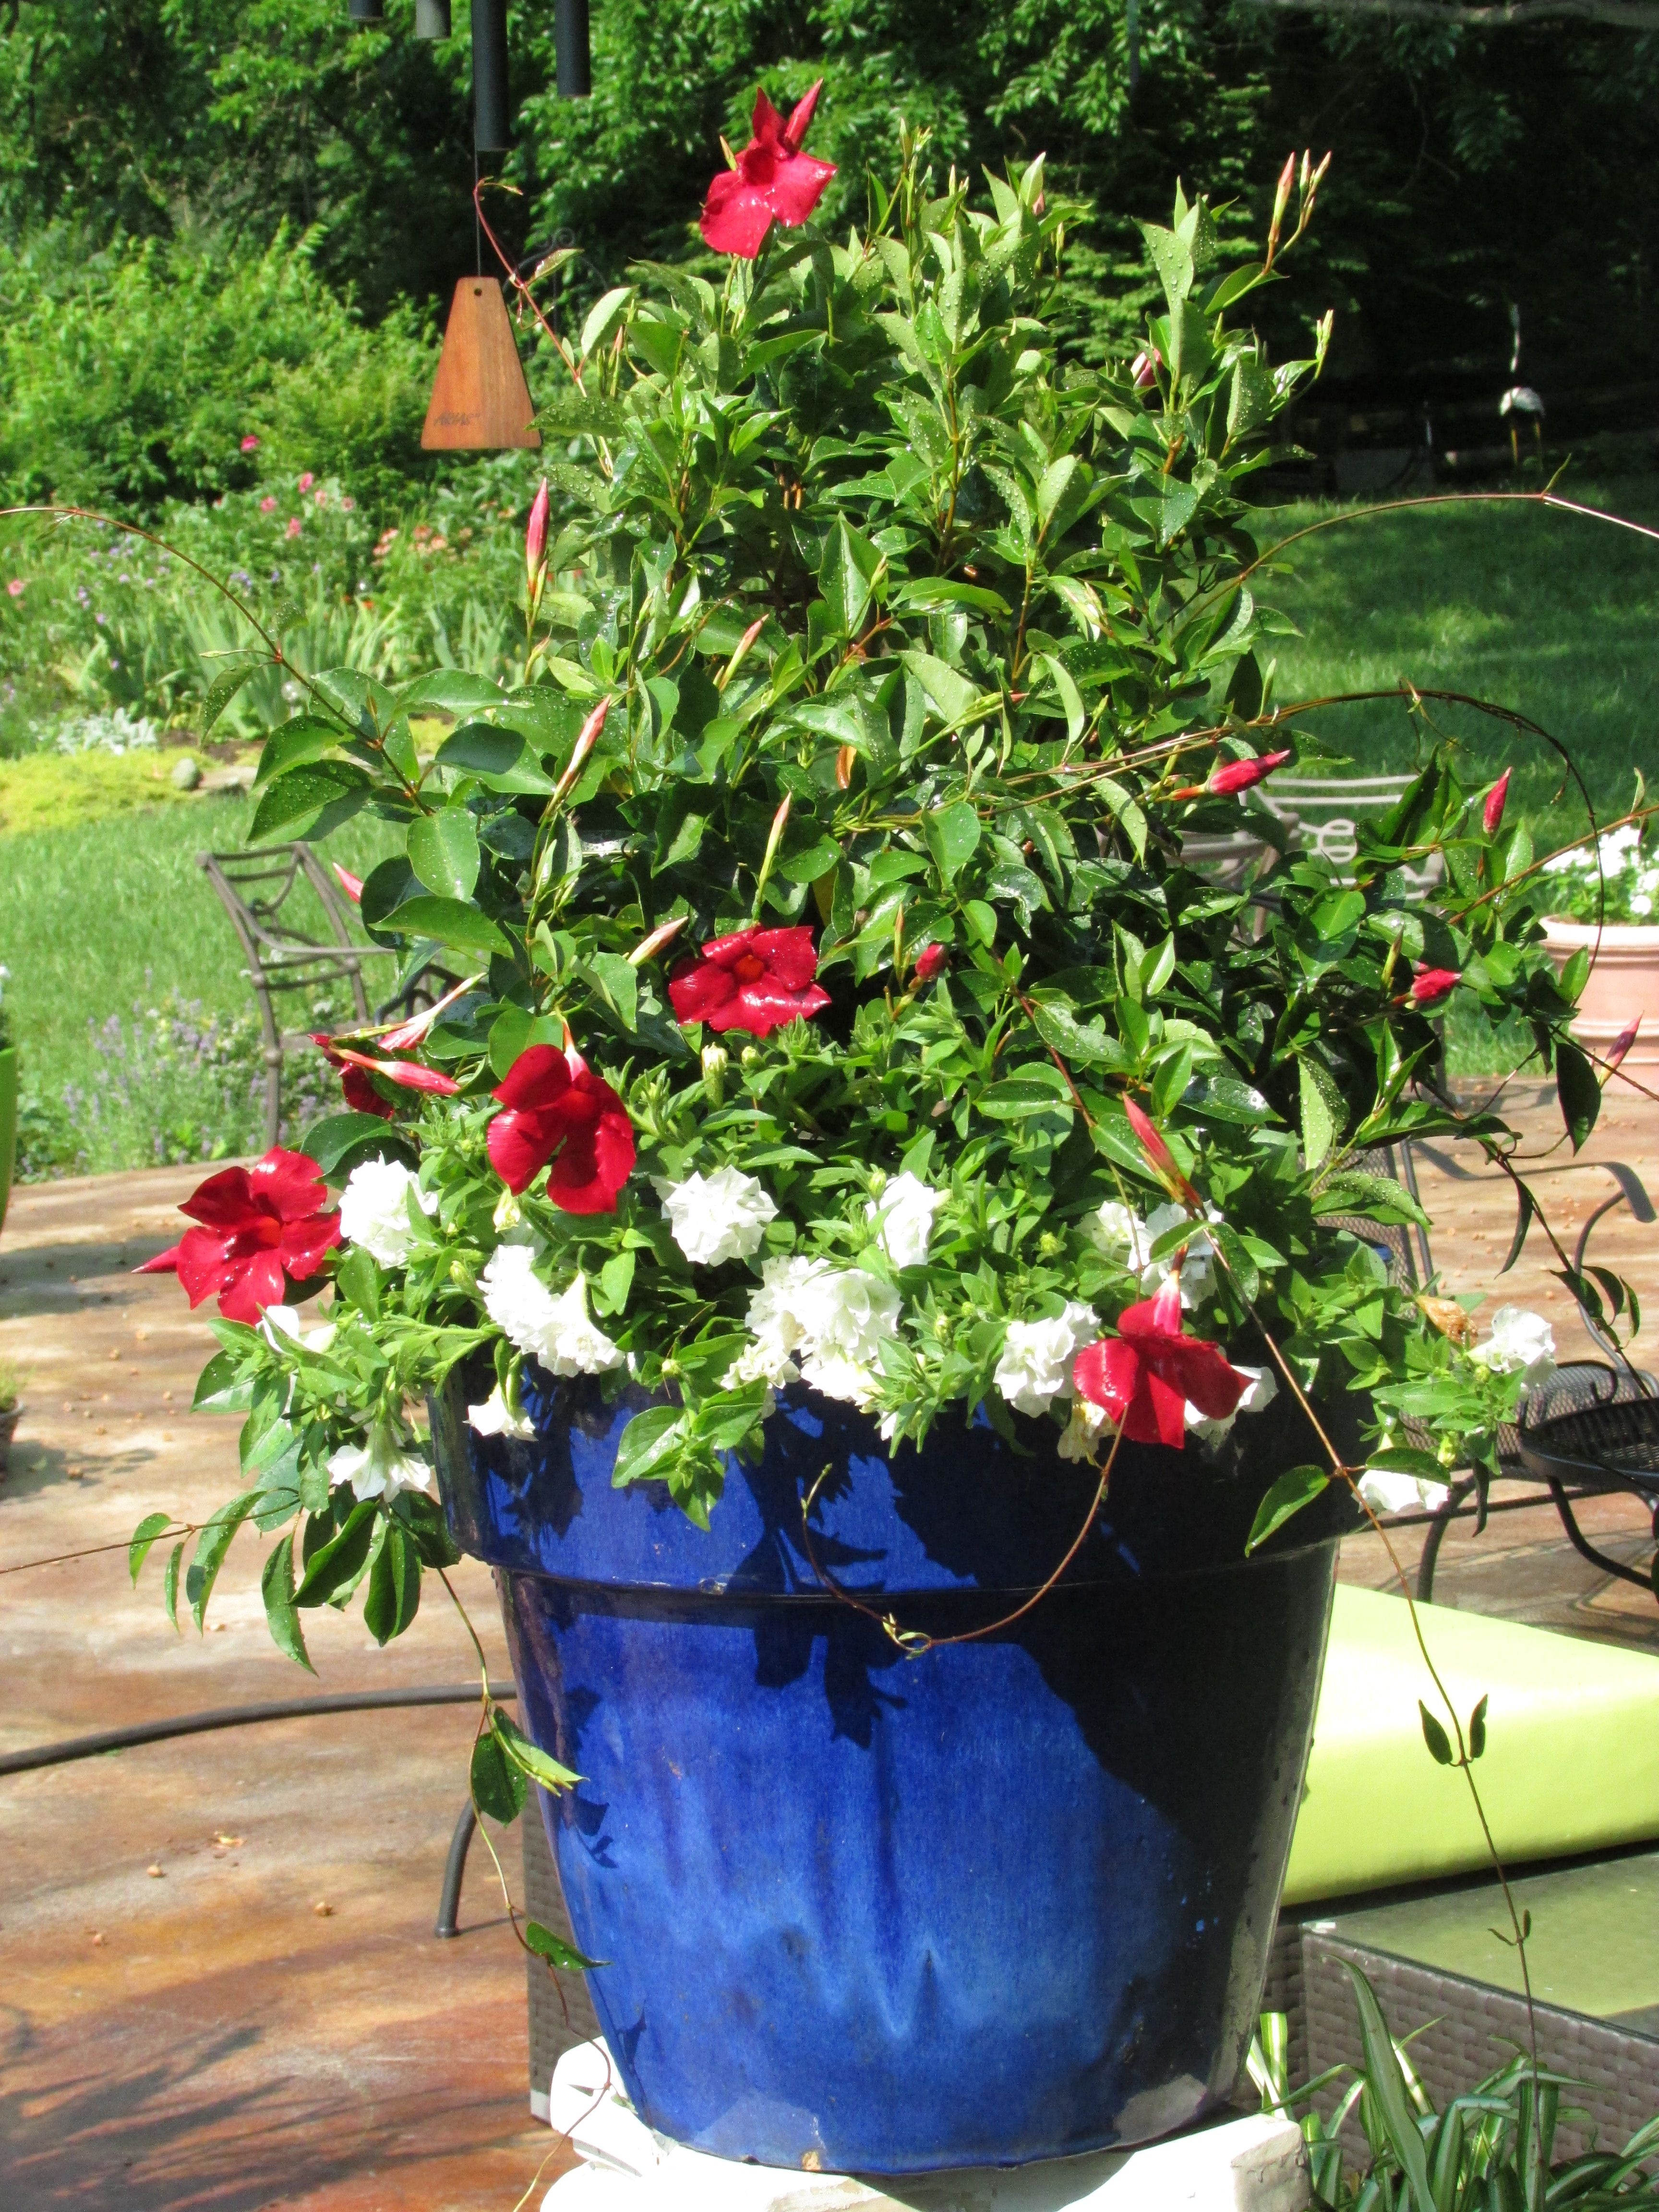 suntory, colorful container flowers, container suntory, container gardening garden trends, garden media group